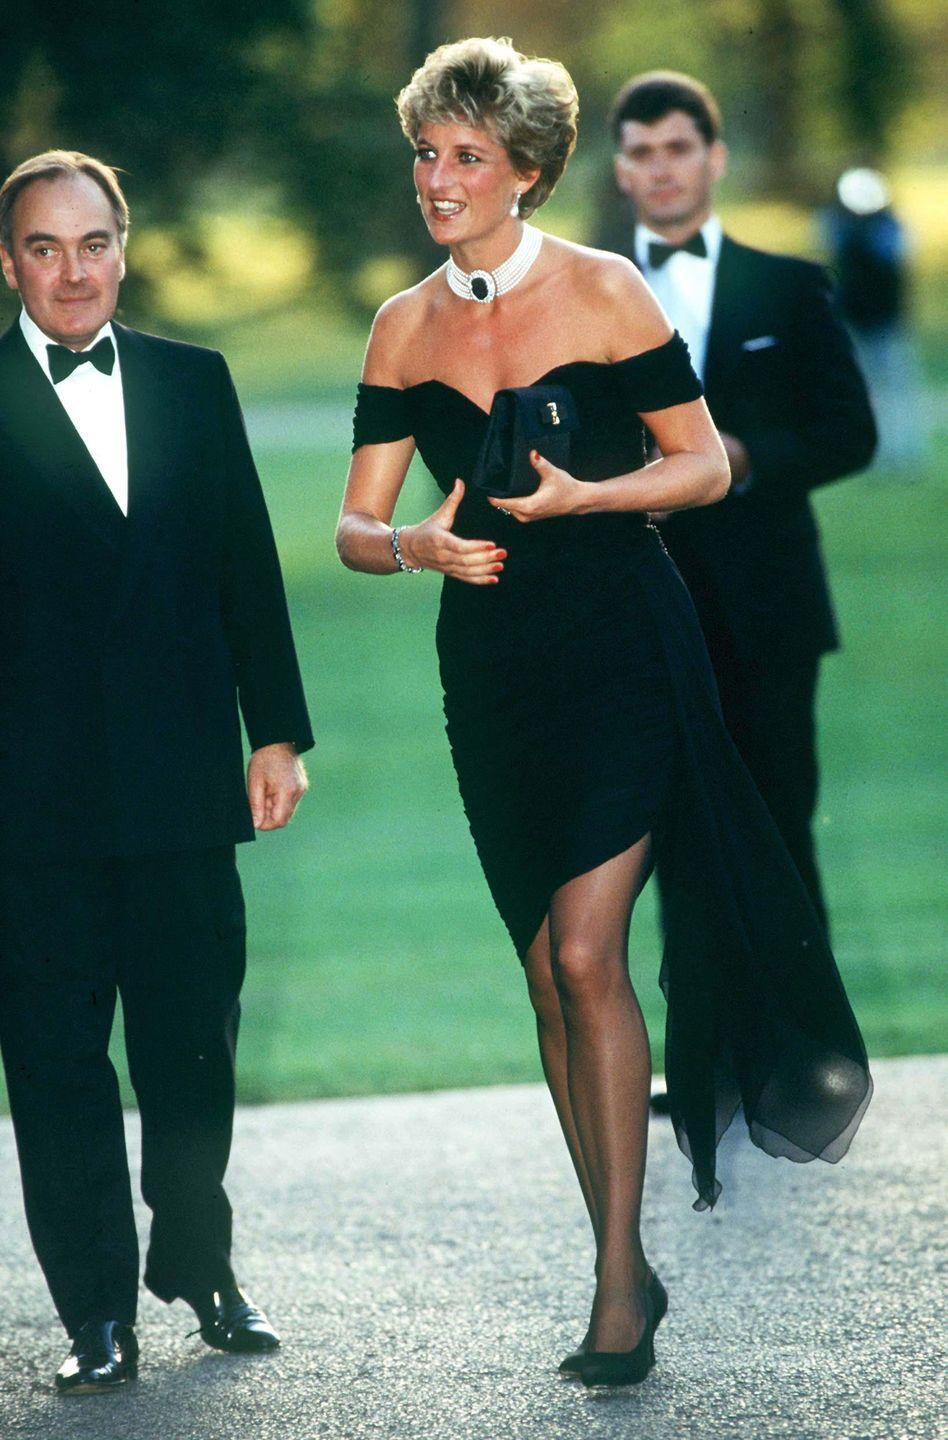 """<p>And finally, that giant sapphire took on new significance as accessory to Princess Diana's infamous <a href=""""https://www.townandcountrymag.com/style/fashion-trends/a36120274/princess-diana-revenge-glamour-trend/"""" rel=""""nofollow noopener"""" target=""""_blank"""" data-ylk=""""slk:revenge dress"""" class=""""link rapid-noclick-resp"""">revenge dress</a> moment in 1994.</p>"""